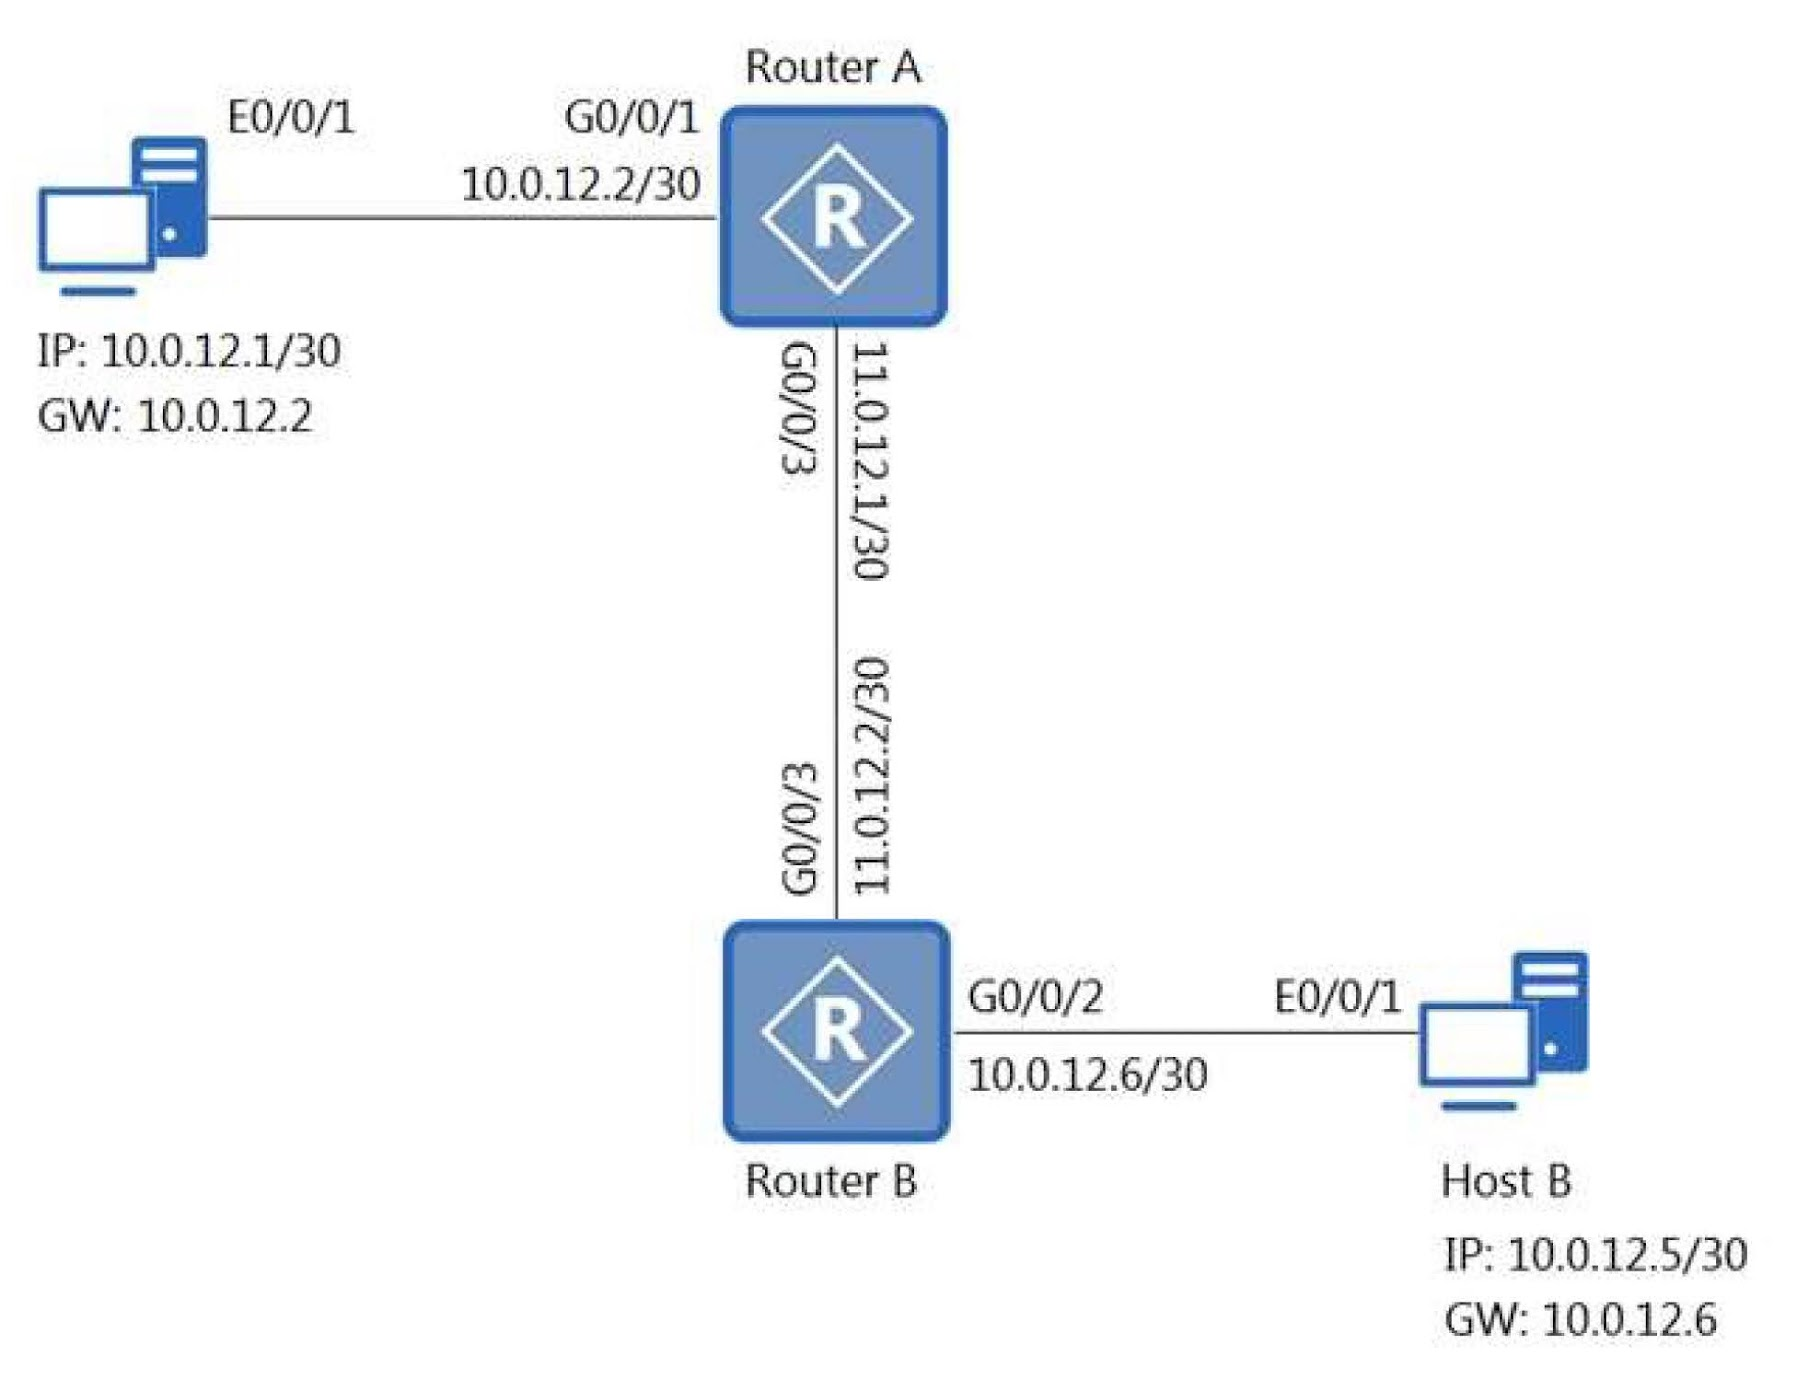 On the network shown in the figure, which of the following commands can be used to enable host A to successfully ping host B?